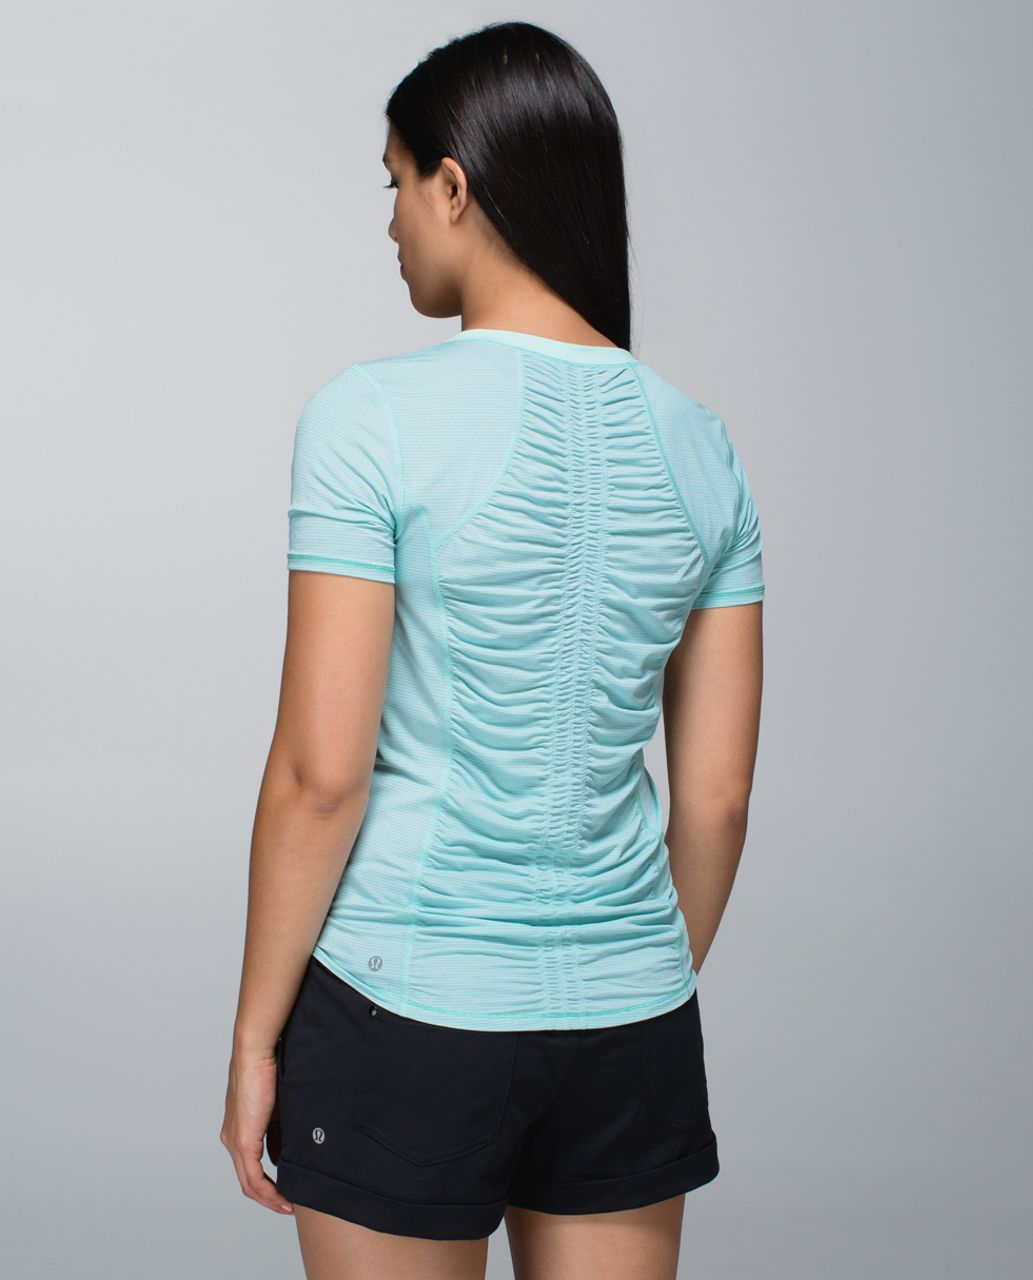 bc3d01ea95 Lululemon Runner Up Short Sleeve - Heathered Aquamarine   Aquamarine ...